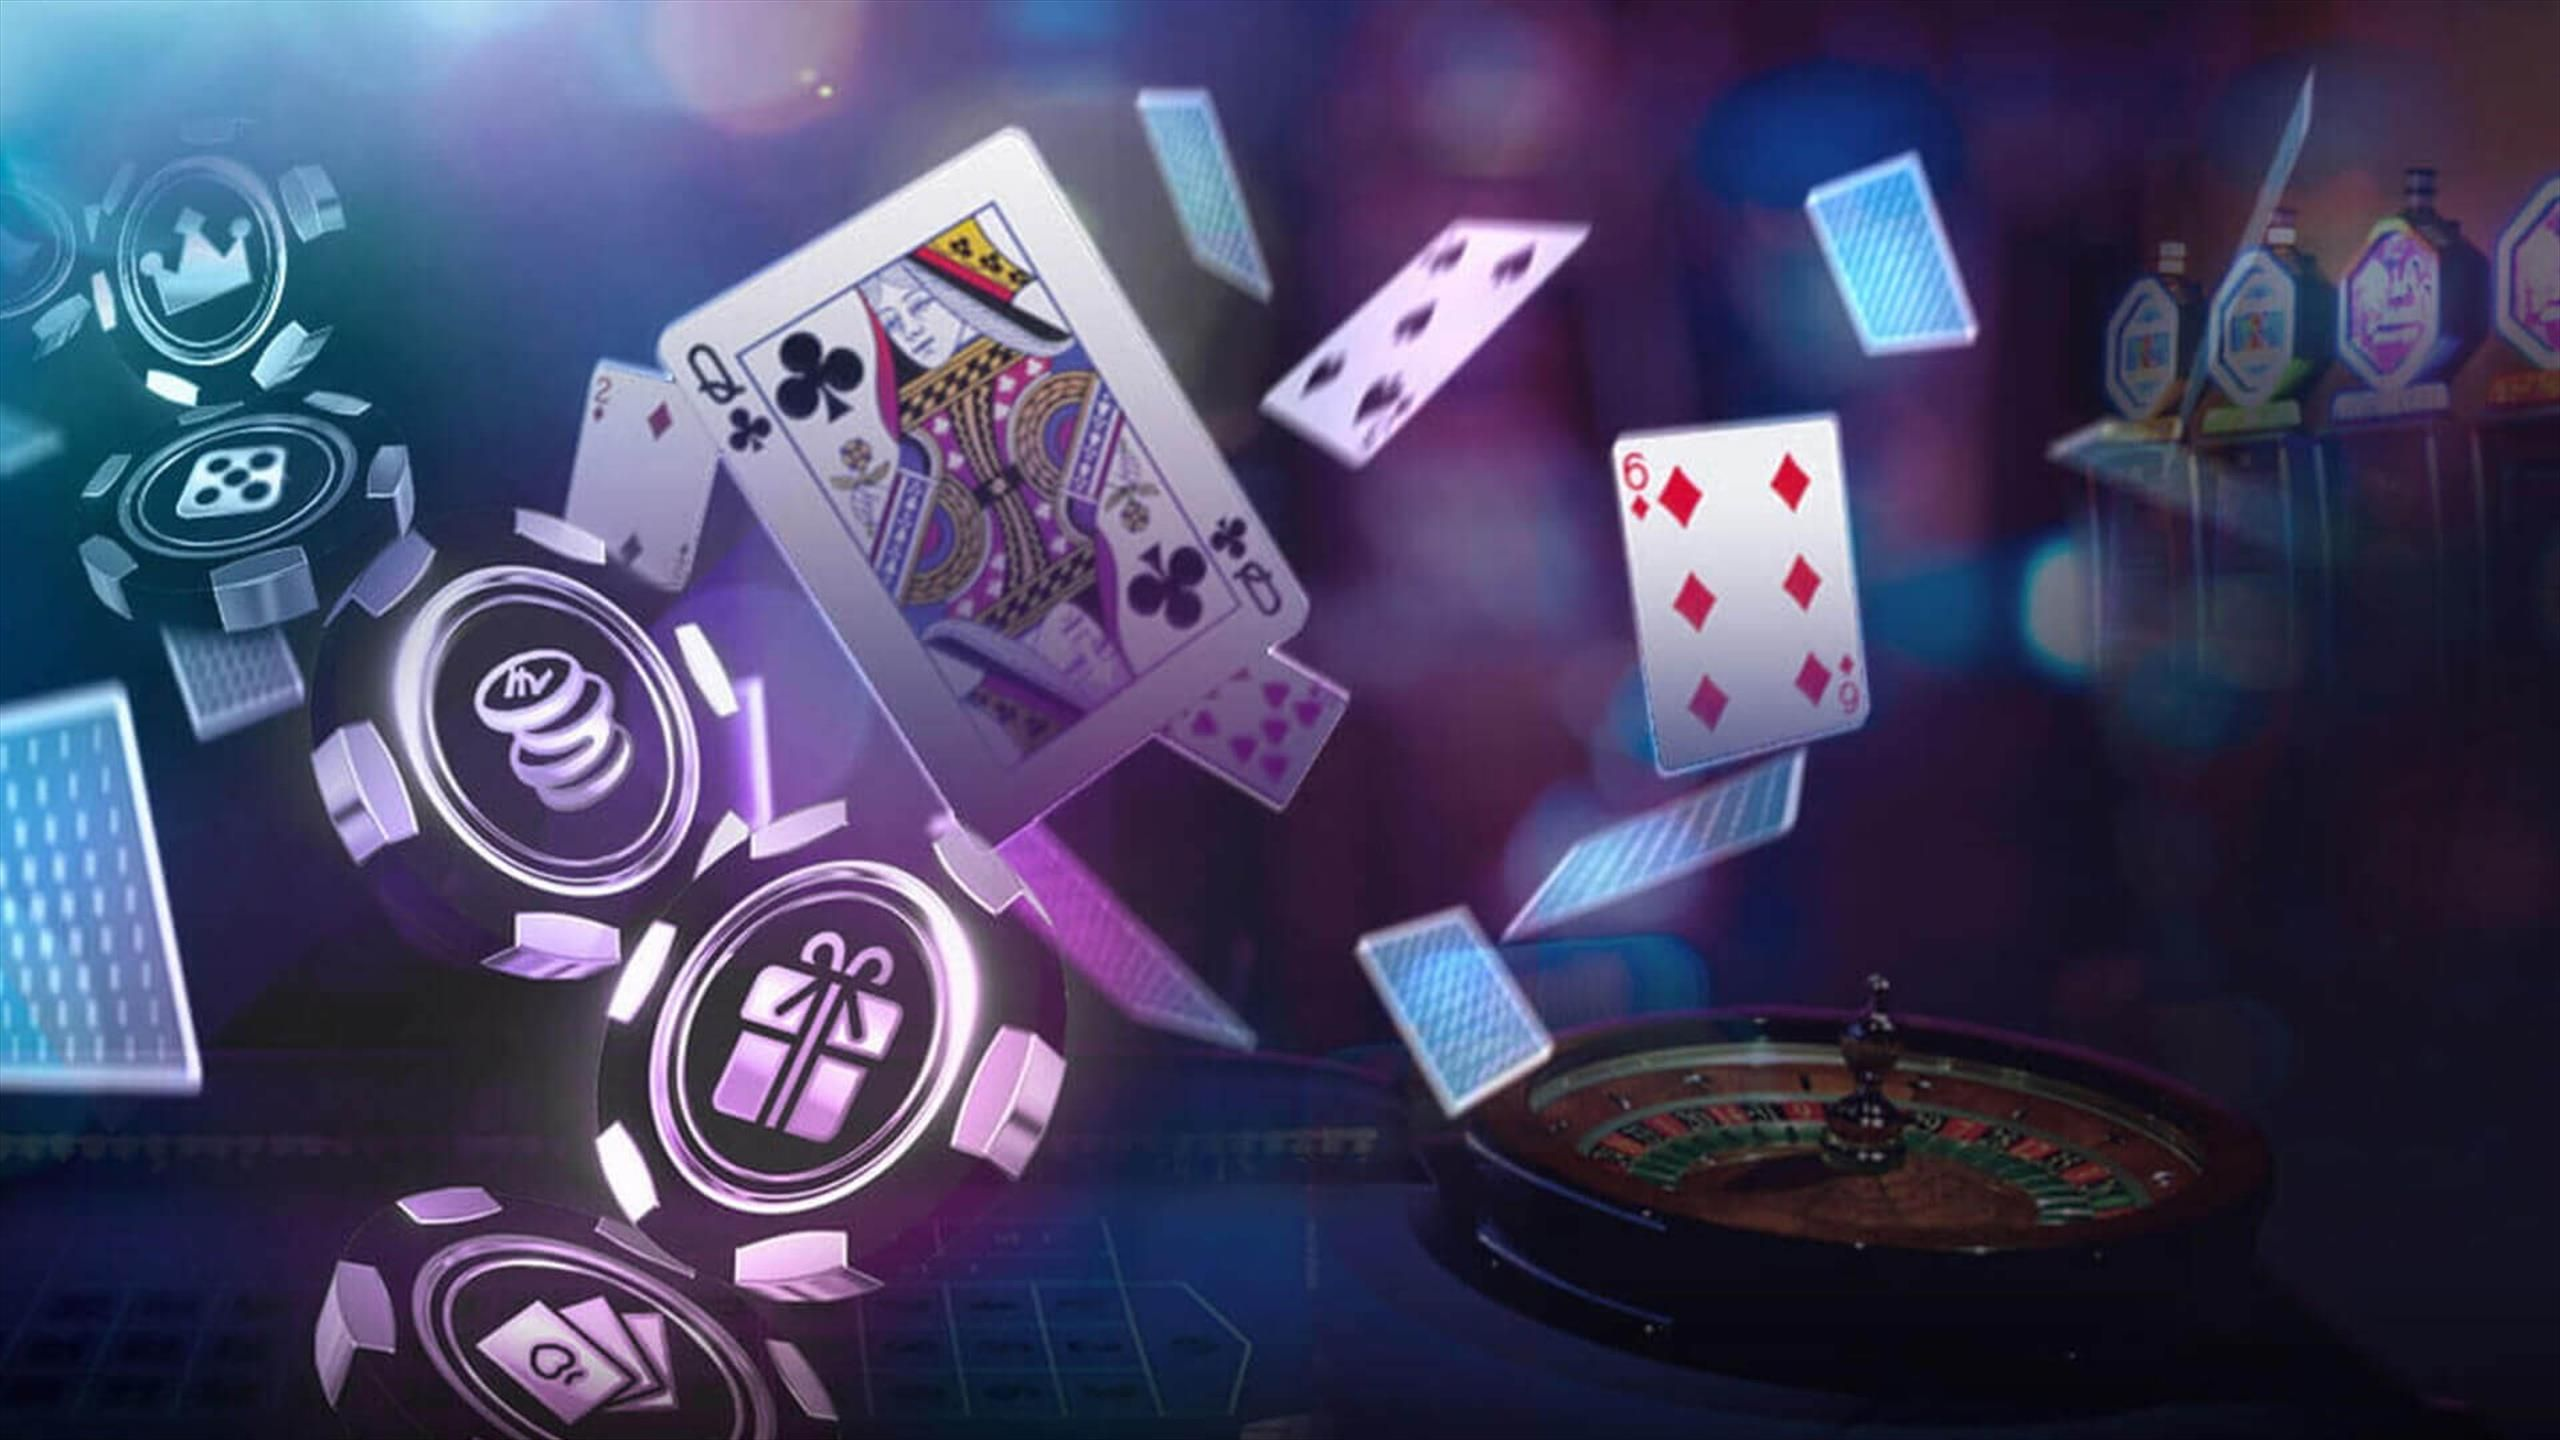 How do I win at the casino? My tips for maximising your winnings